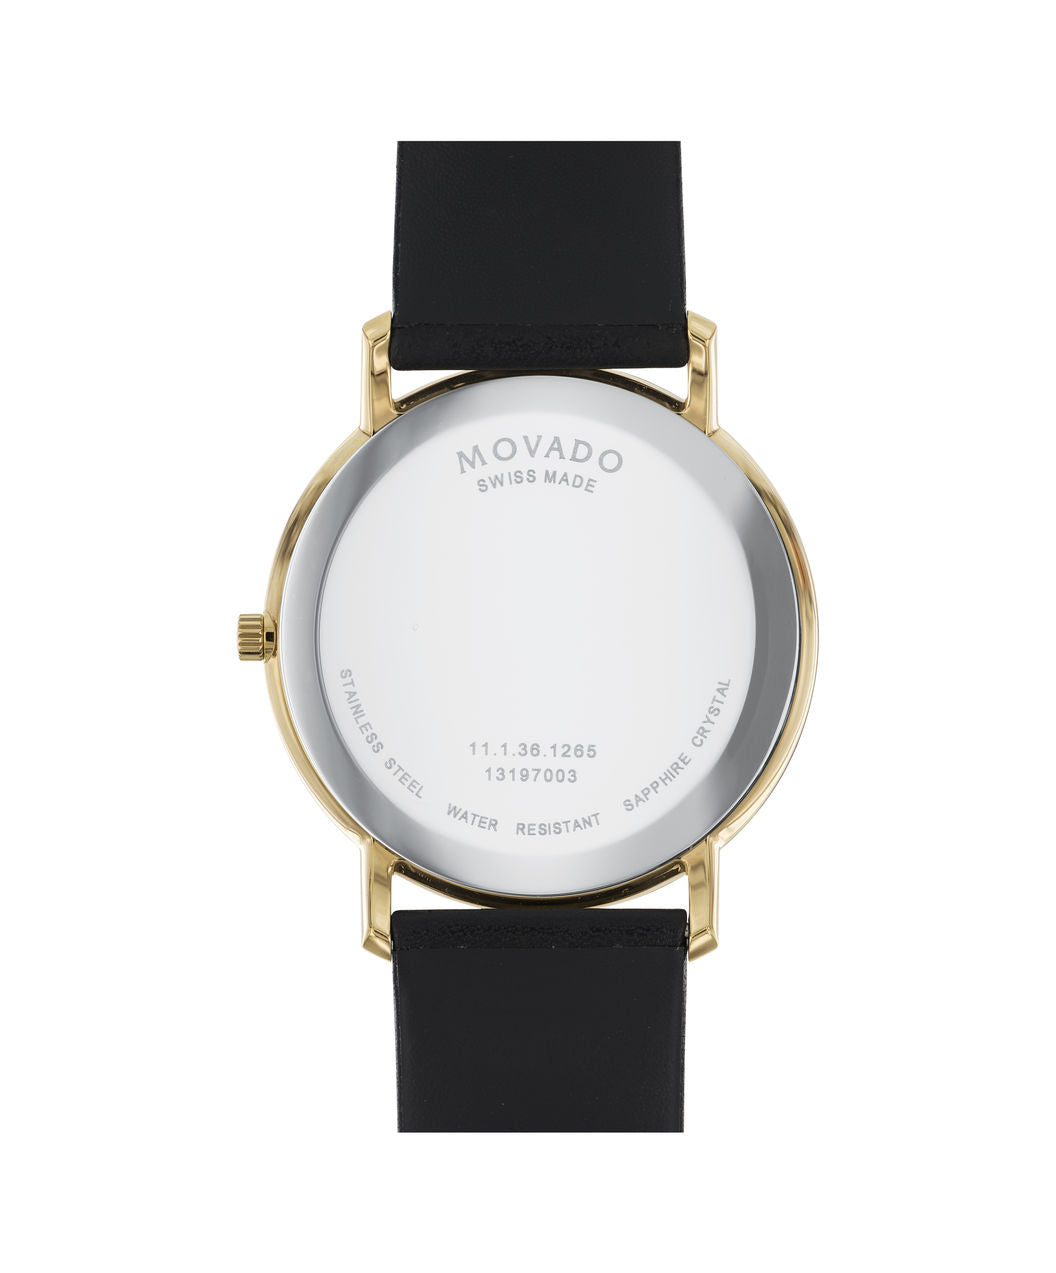 Movado Watch Sapphire Collection - Gold PVD on Black Leather